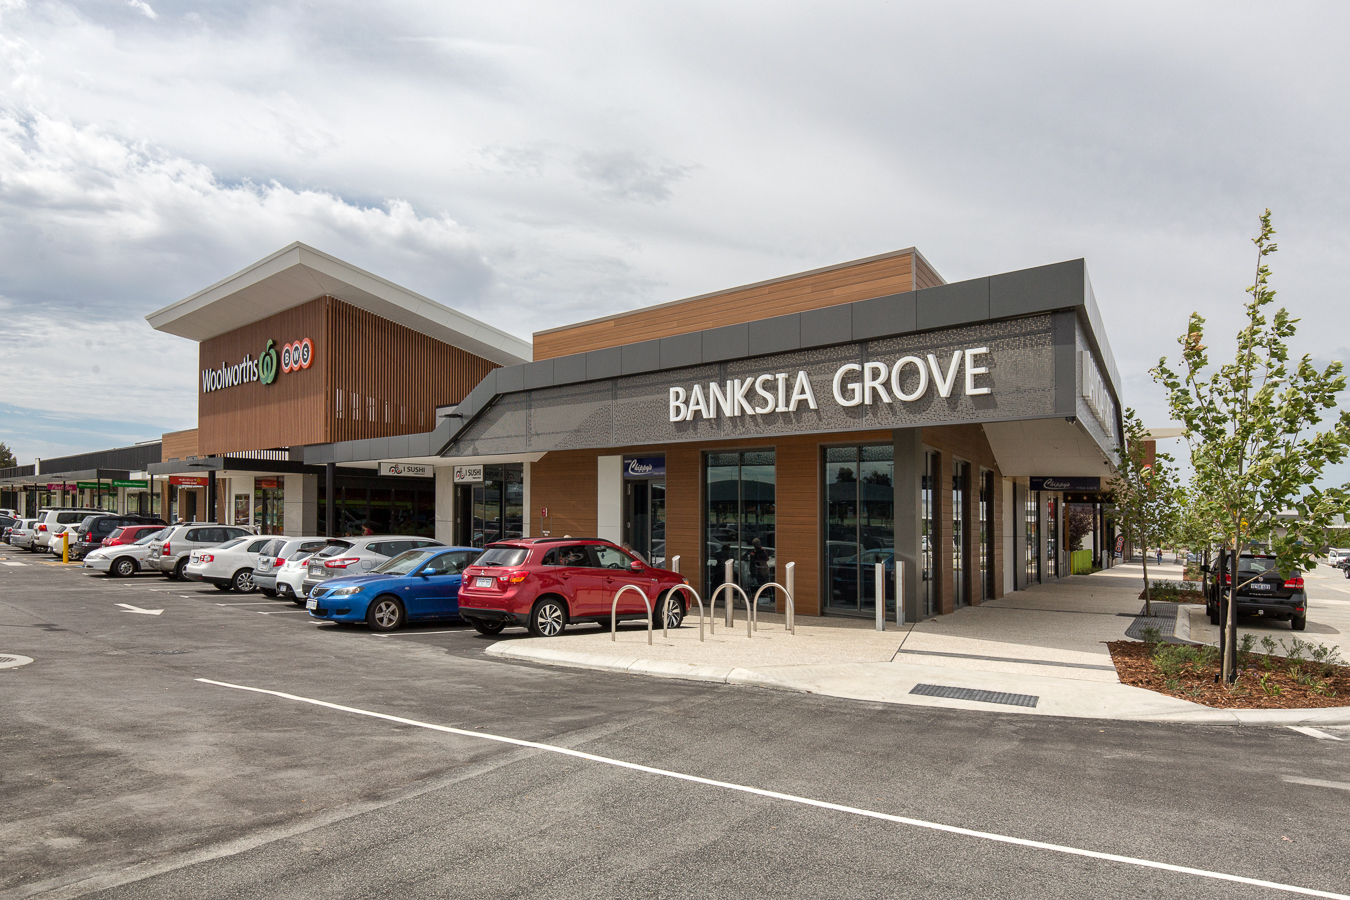 Banksia Grove Woolworths